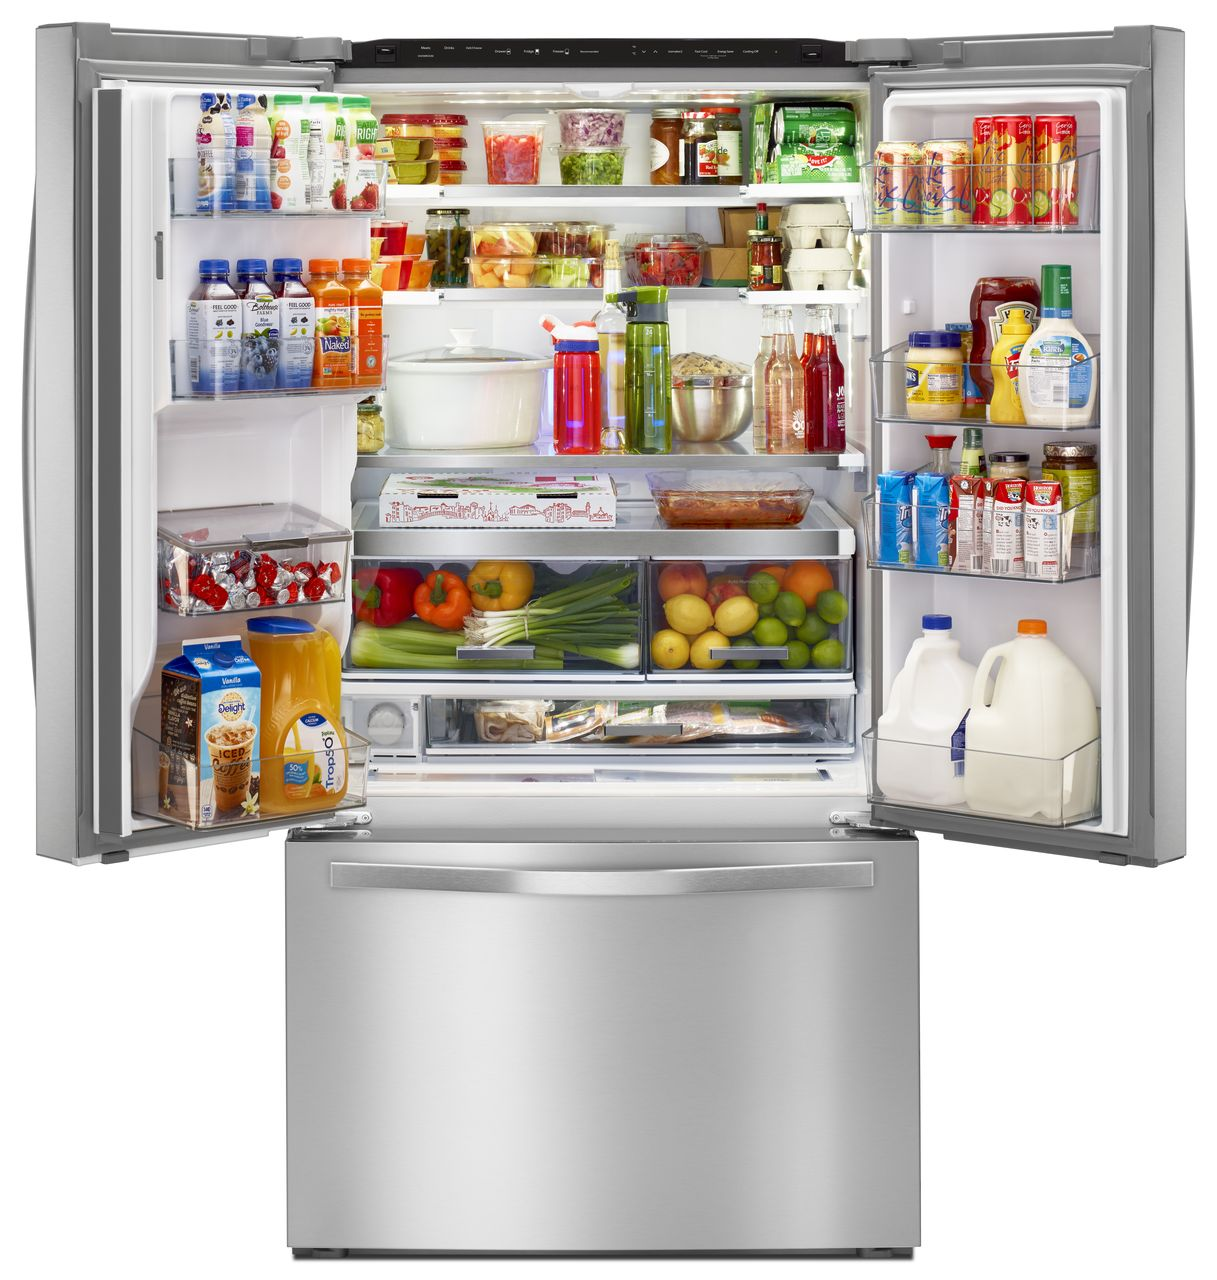 Organization and the future of refrigeration innovation organization and the future of refrigeration innovation remodeling appliances interior design rubansaba